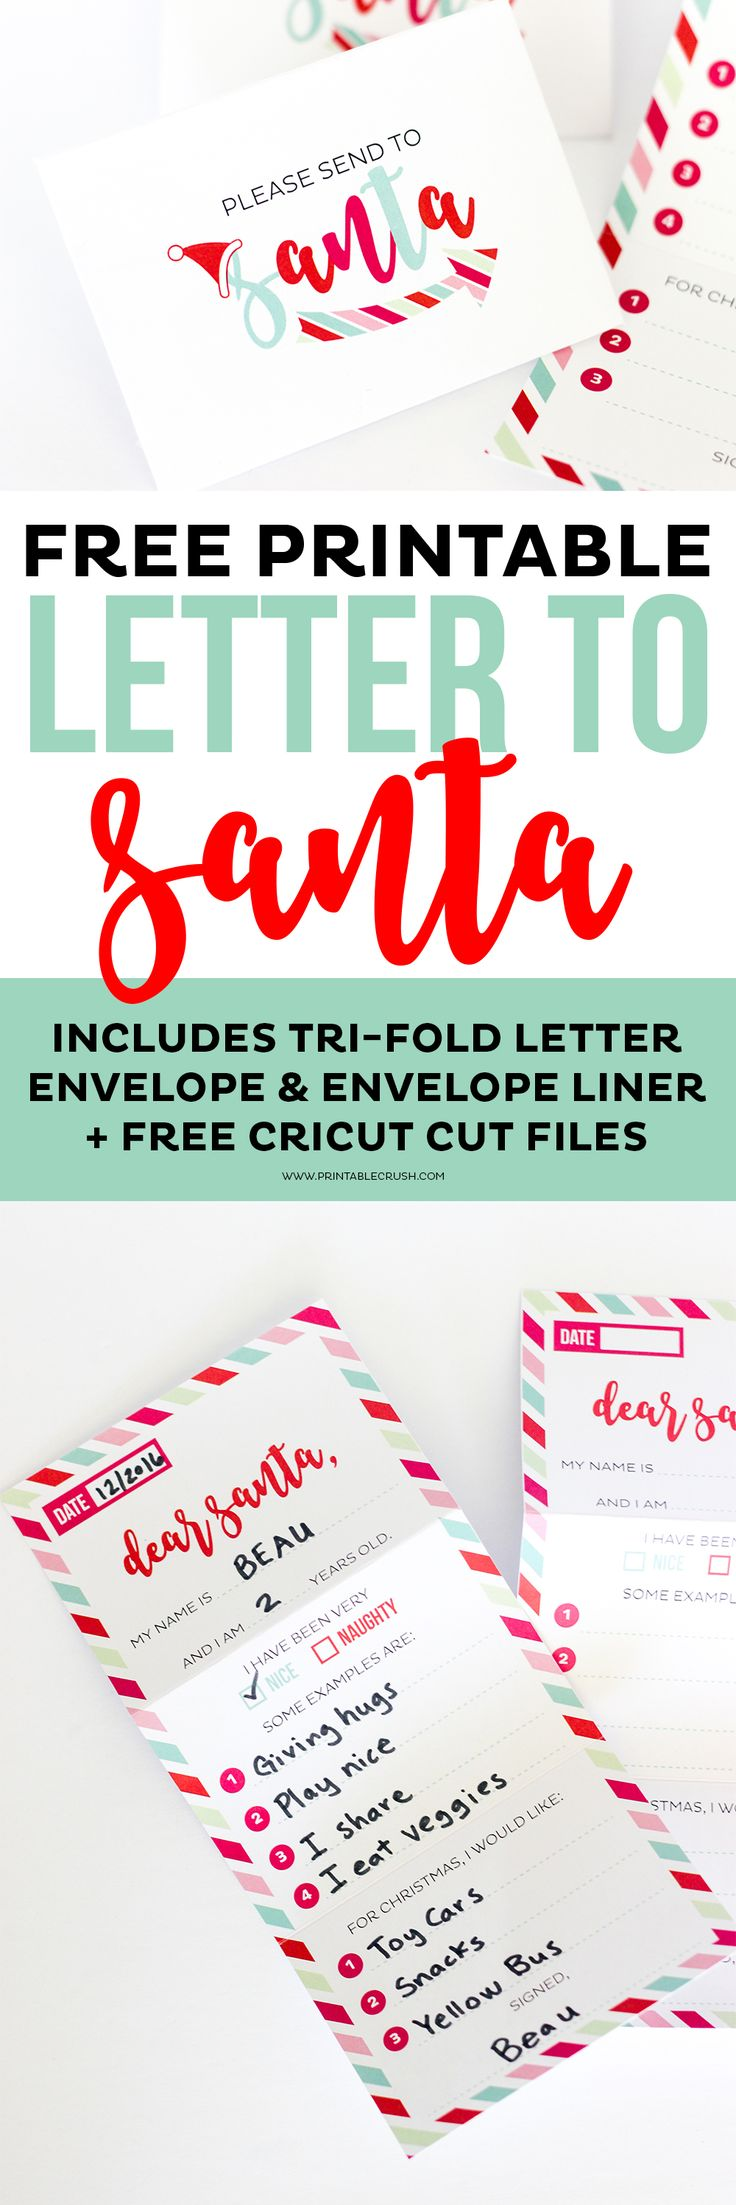 This adorable FREE Santa Letter Printable Set includes a tri-fold letter, envelope, and envelope liner cut files! It is such a fun Christmas keepsake!